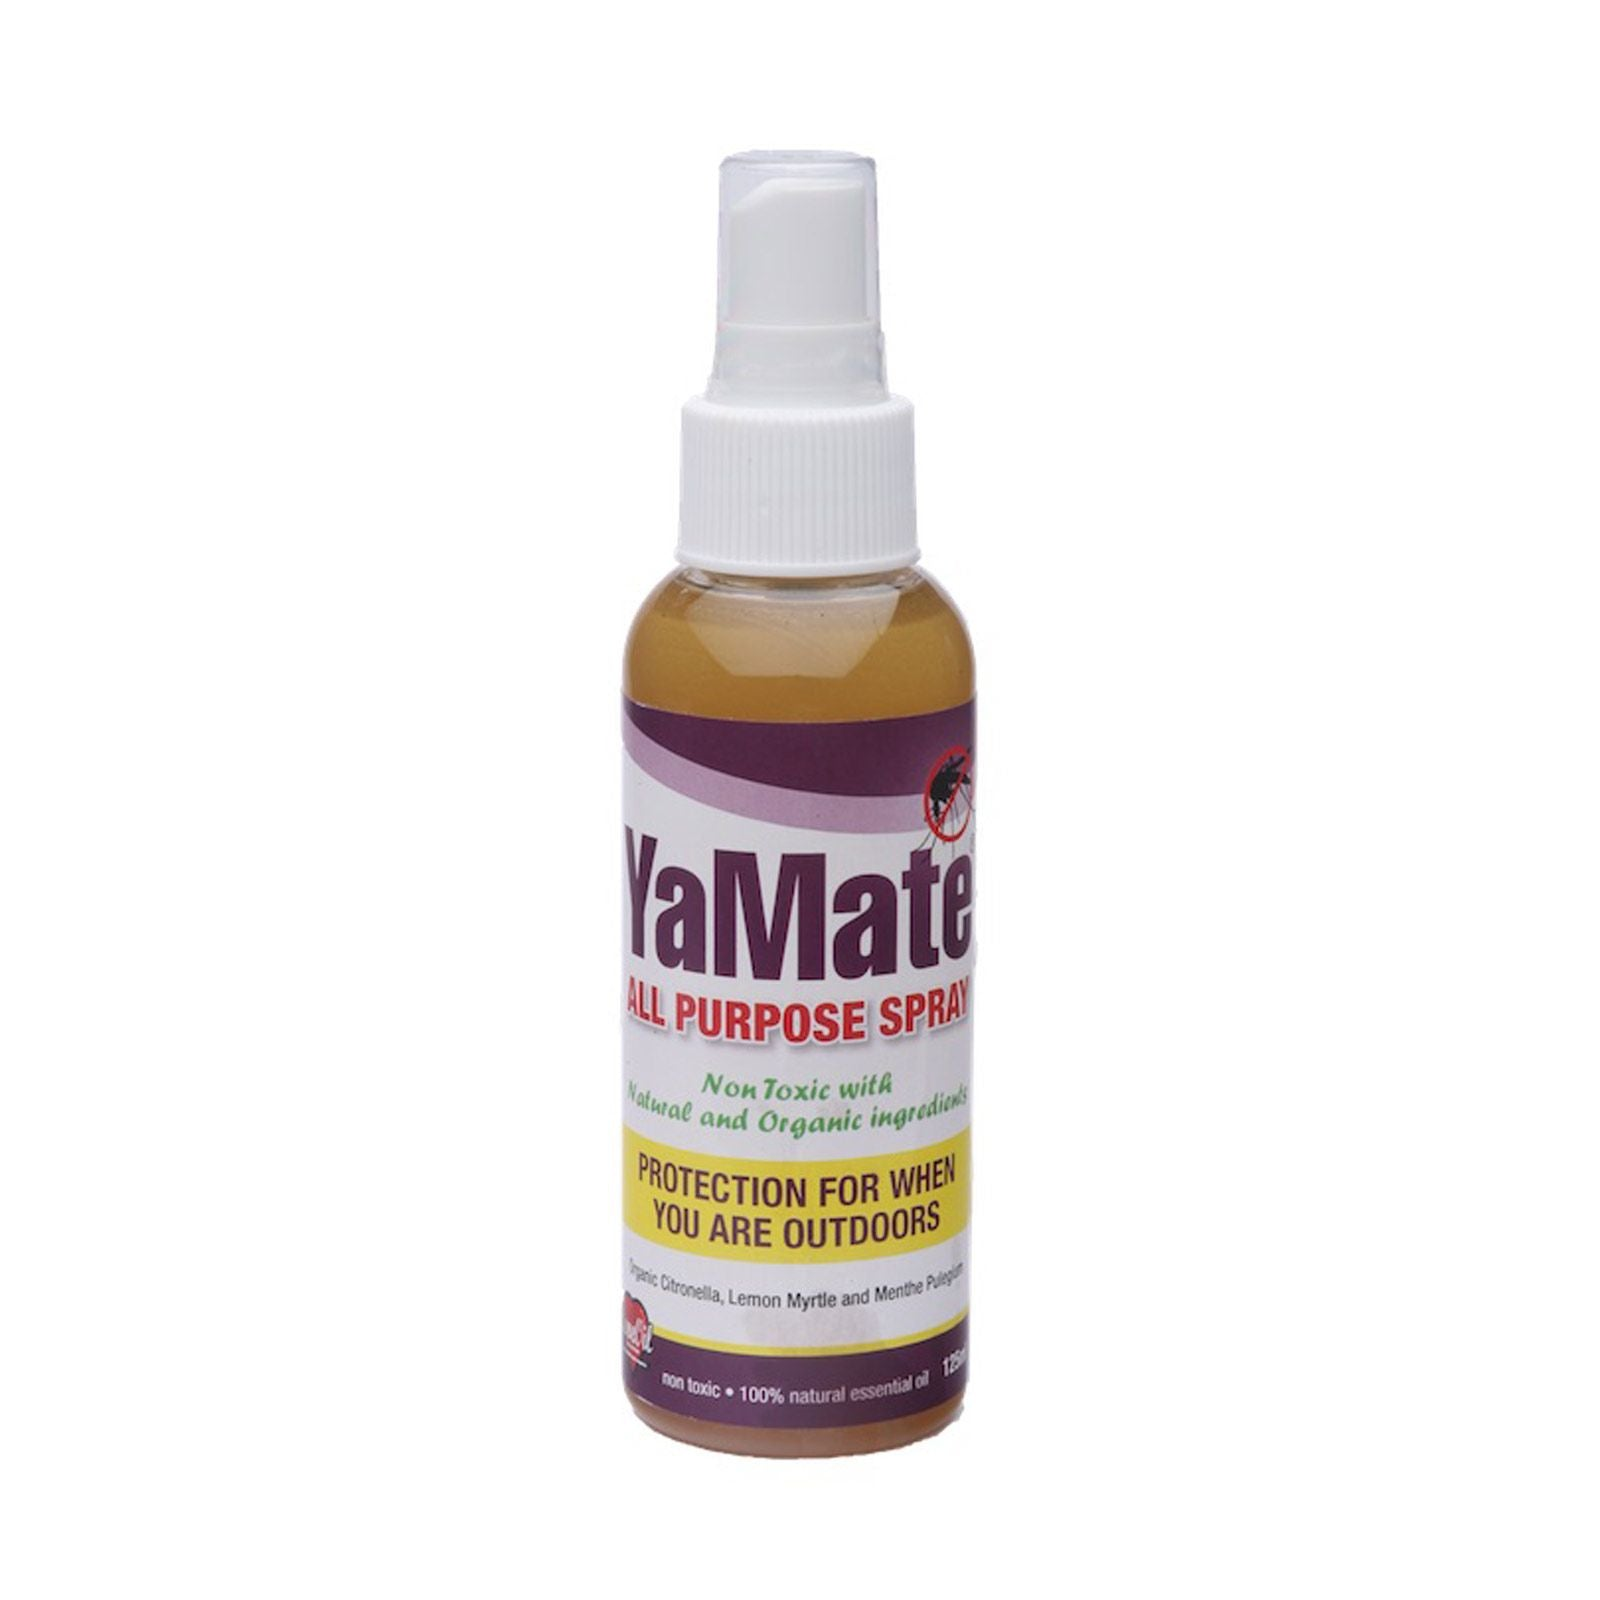 YaMate All-Purpose Spray Protection Natural & Organic